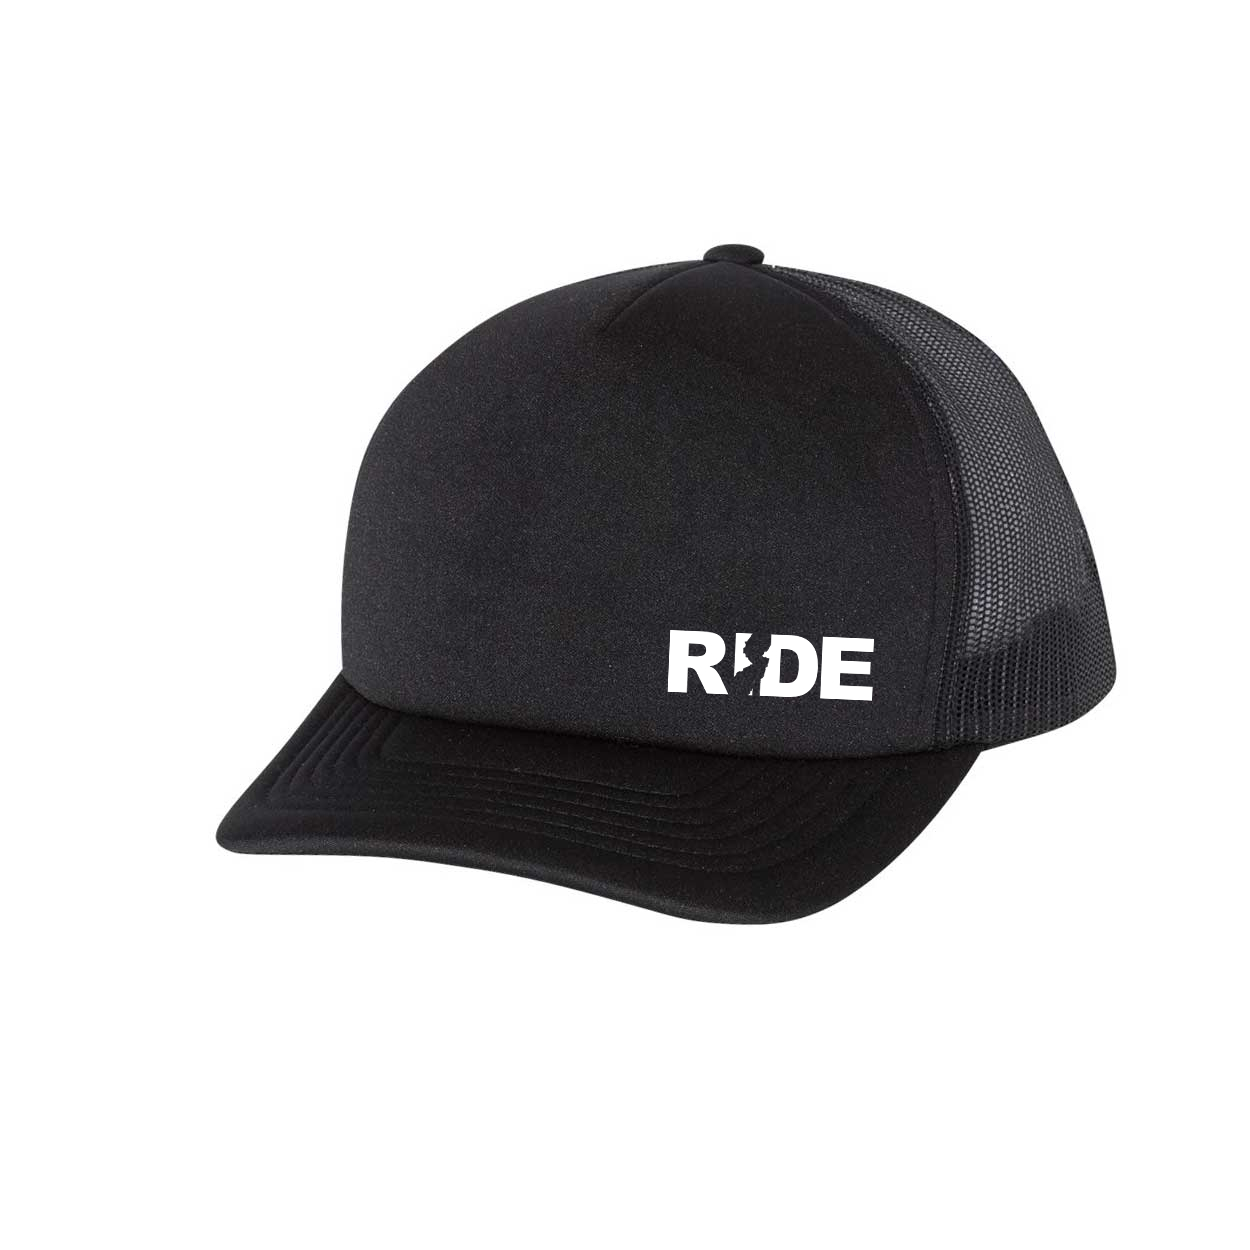 Ride New Jersey Night Out Premium Foam Trucker Snapback Hat Black (White Logo)